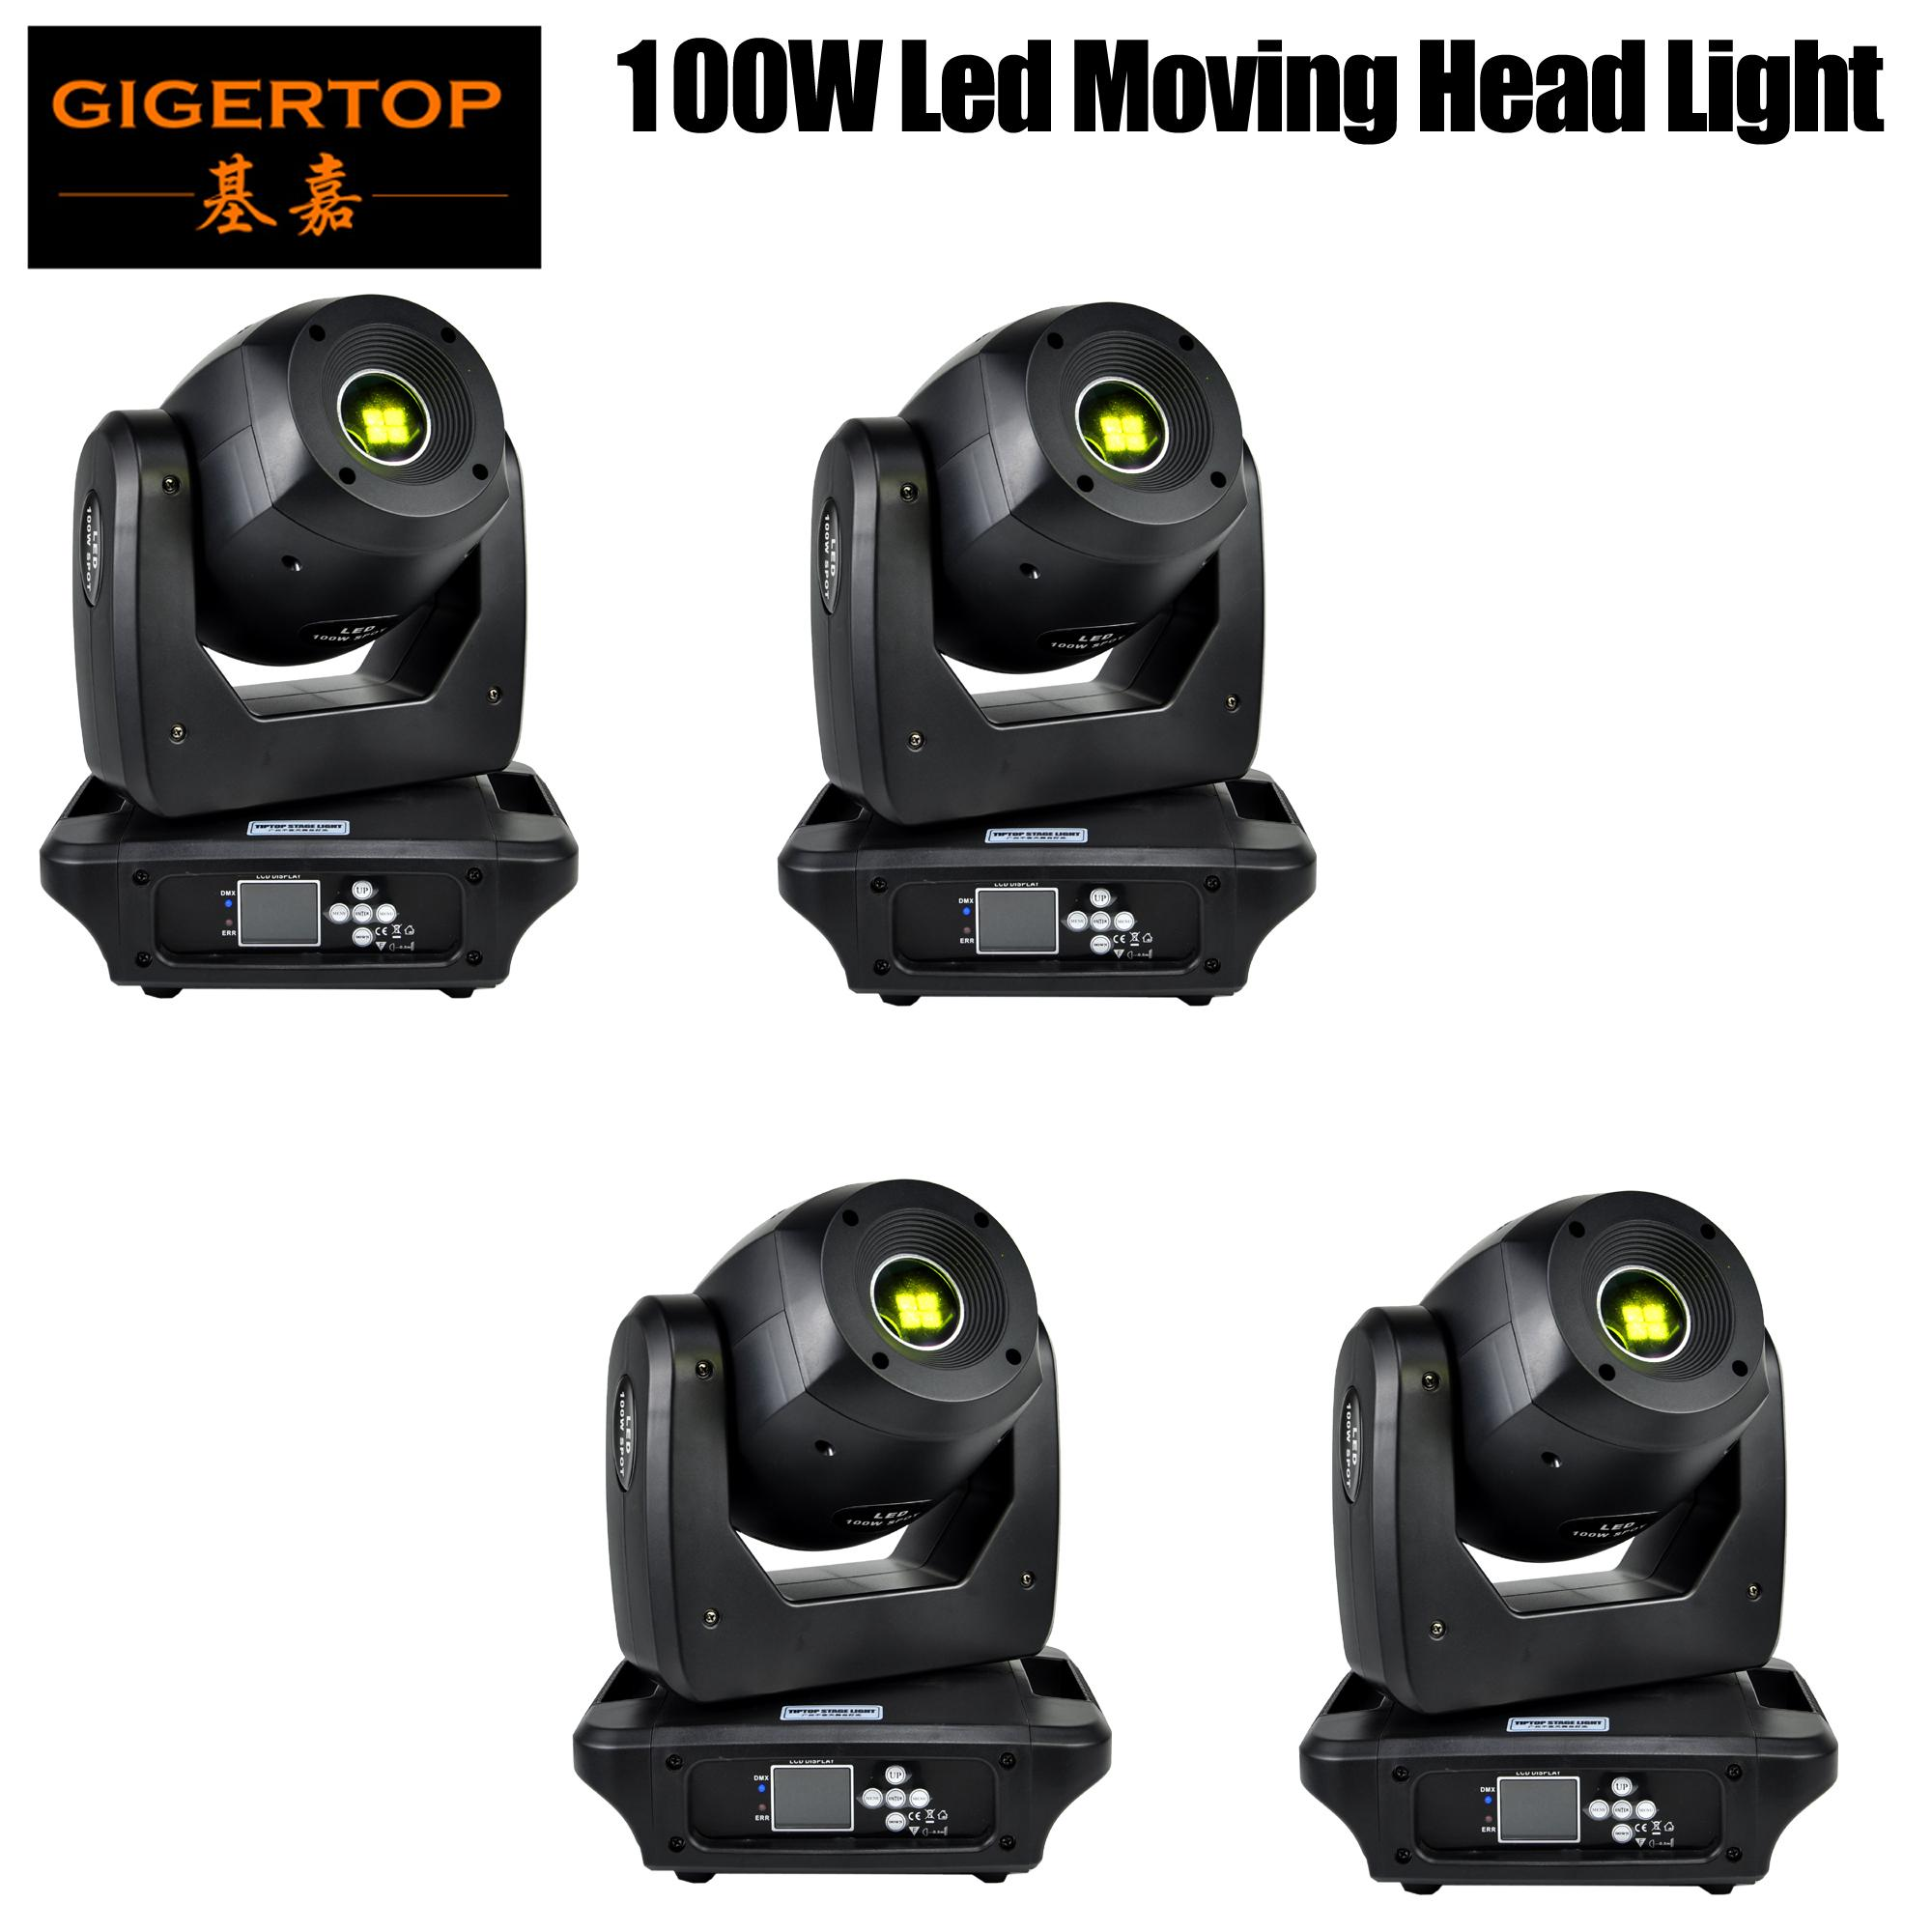 Freeshipping 4 Pack Spot Lyre 100W Gobo LED Lyre Moving Head Light Spot Moving Head Light for Stage Theater Disco Nightclub Party